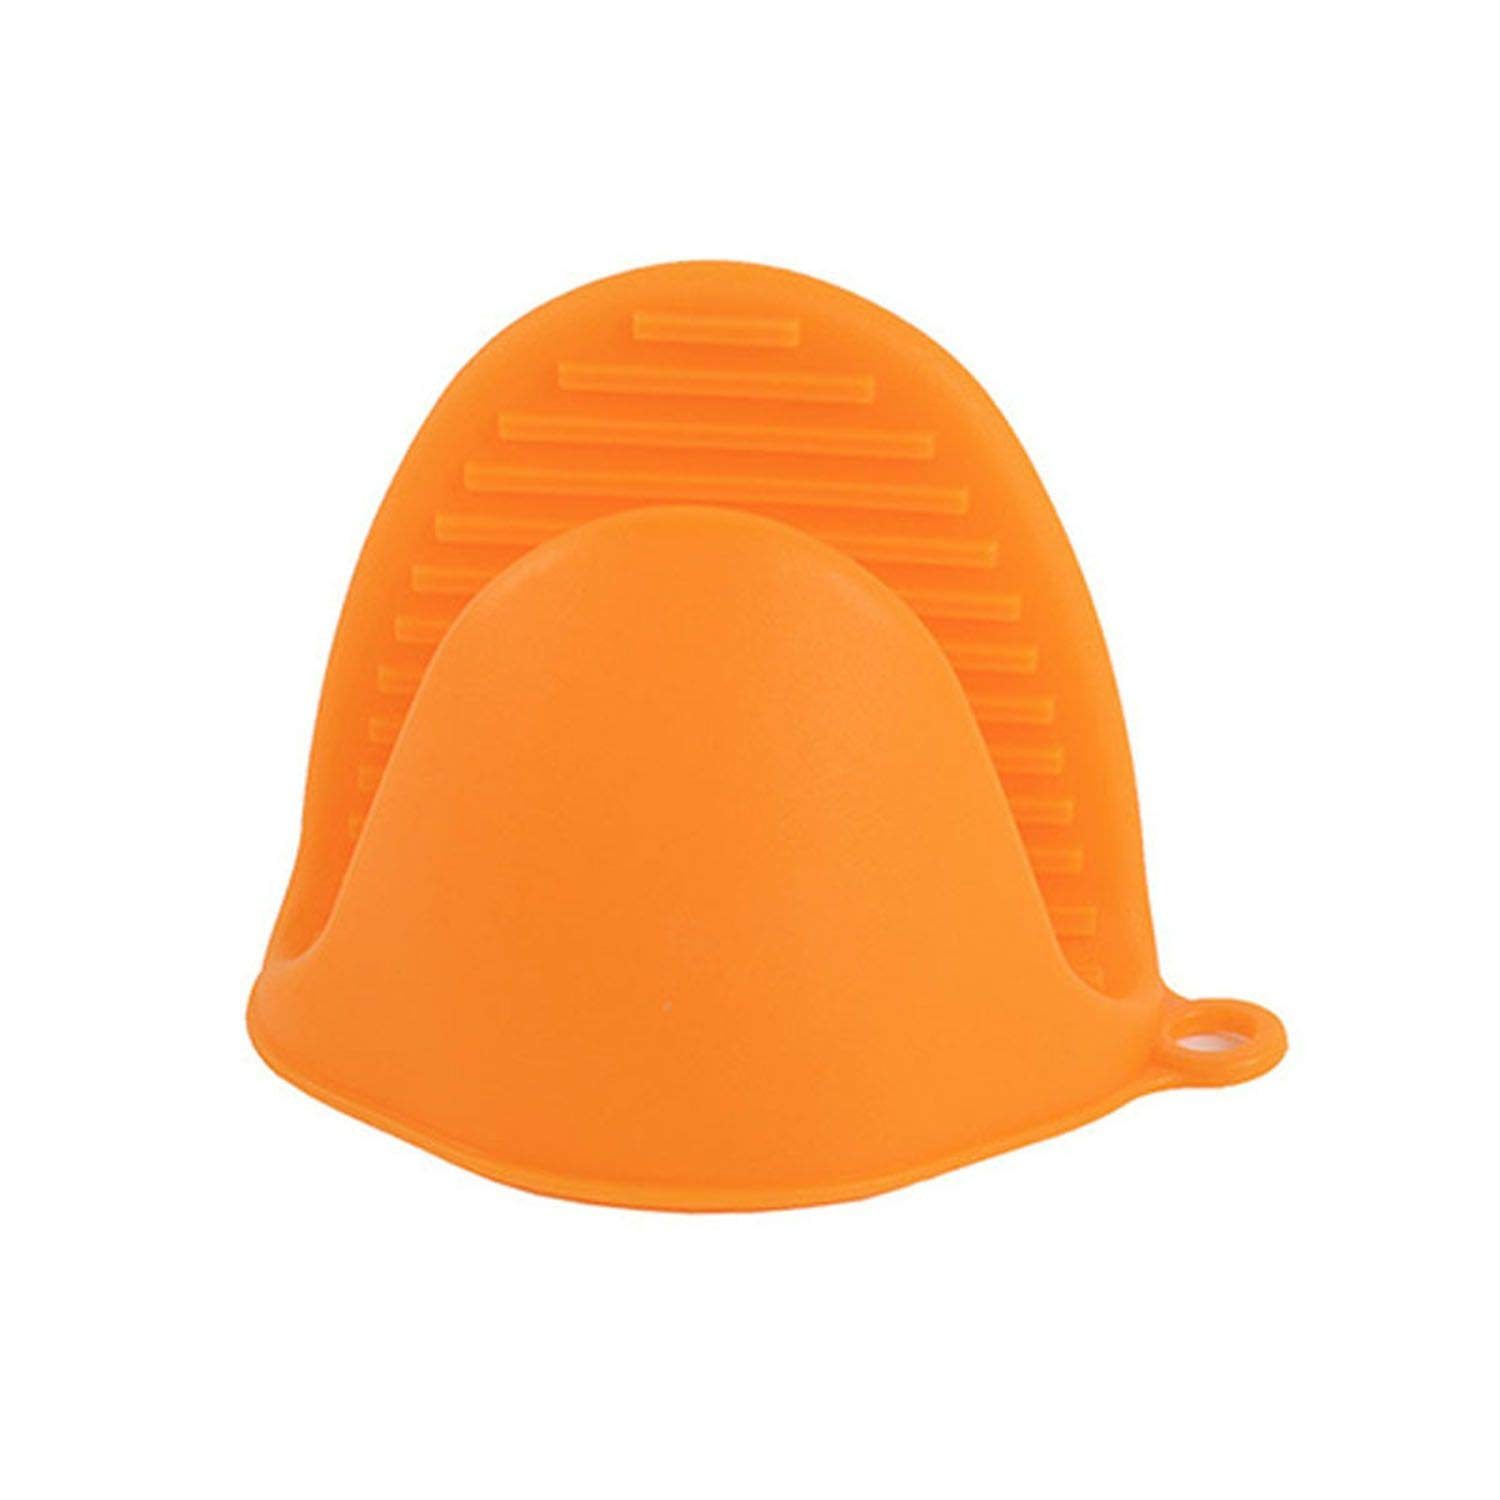 start-imagine Silicone Kitchen Insulated Heat Pot Clips Microwave Oven Gloves Plate Clip 1 Pcs Anti-Scald Thicken,Orange